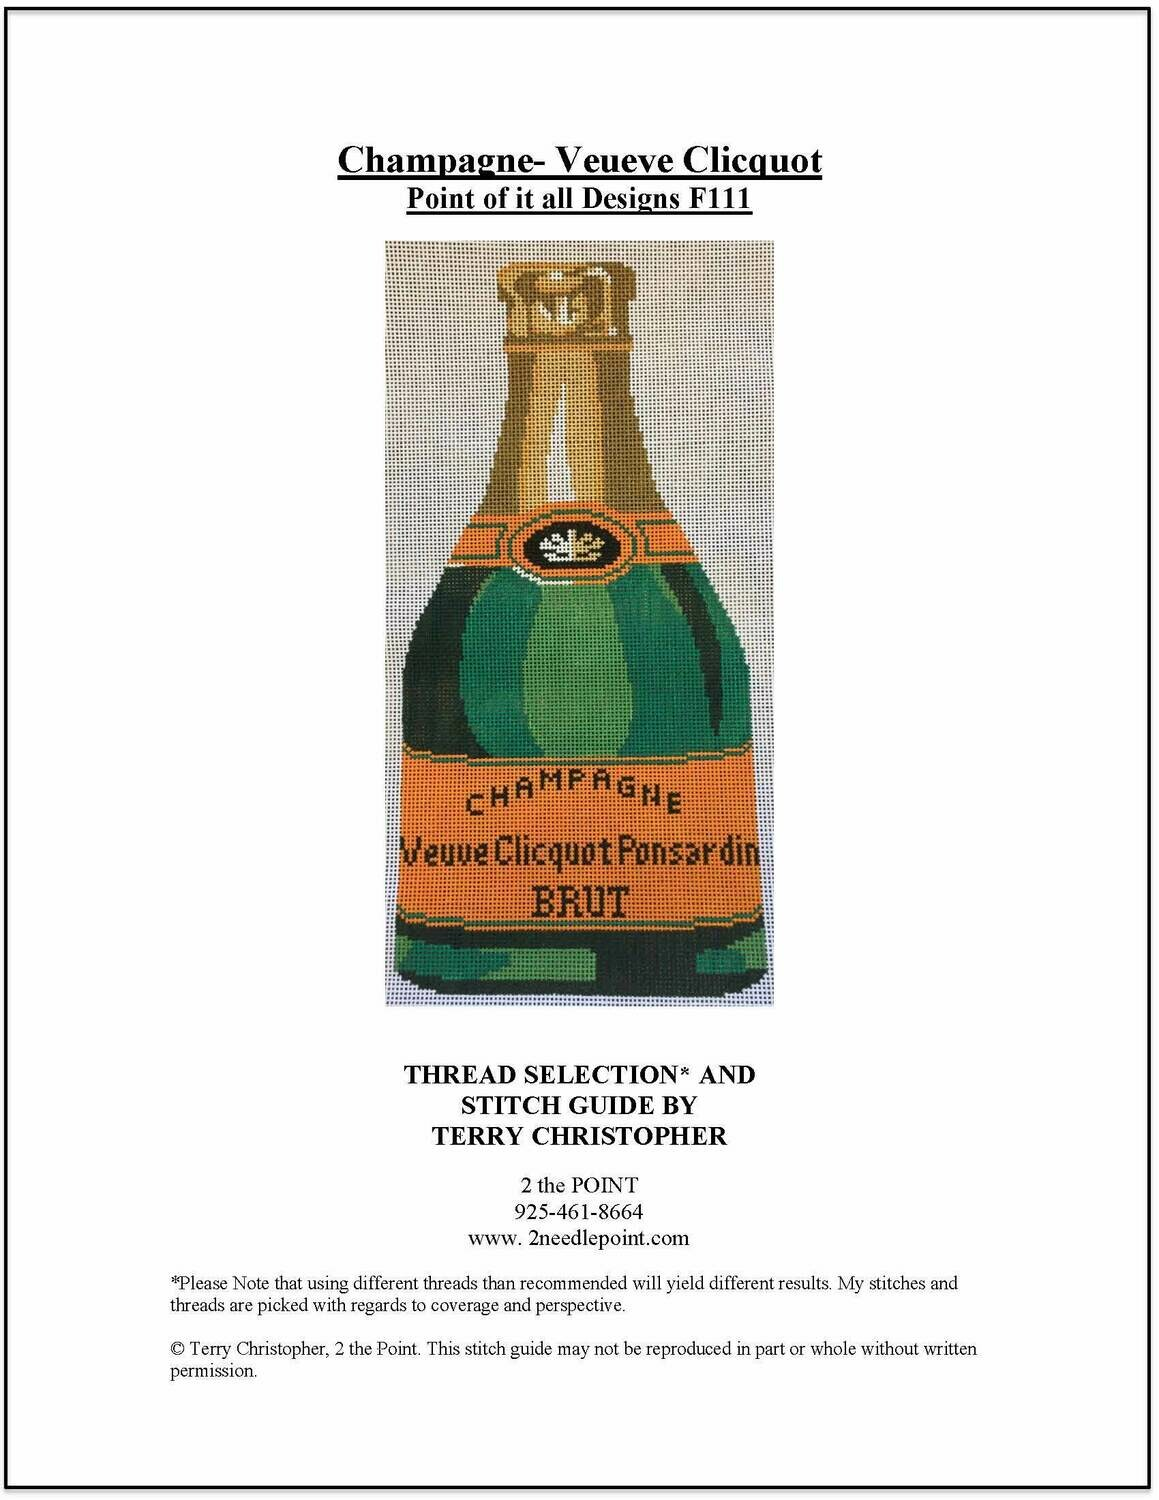 Point of it All, Veuve Champagne